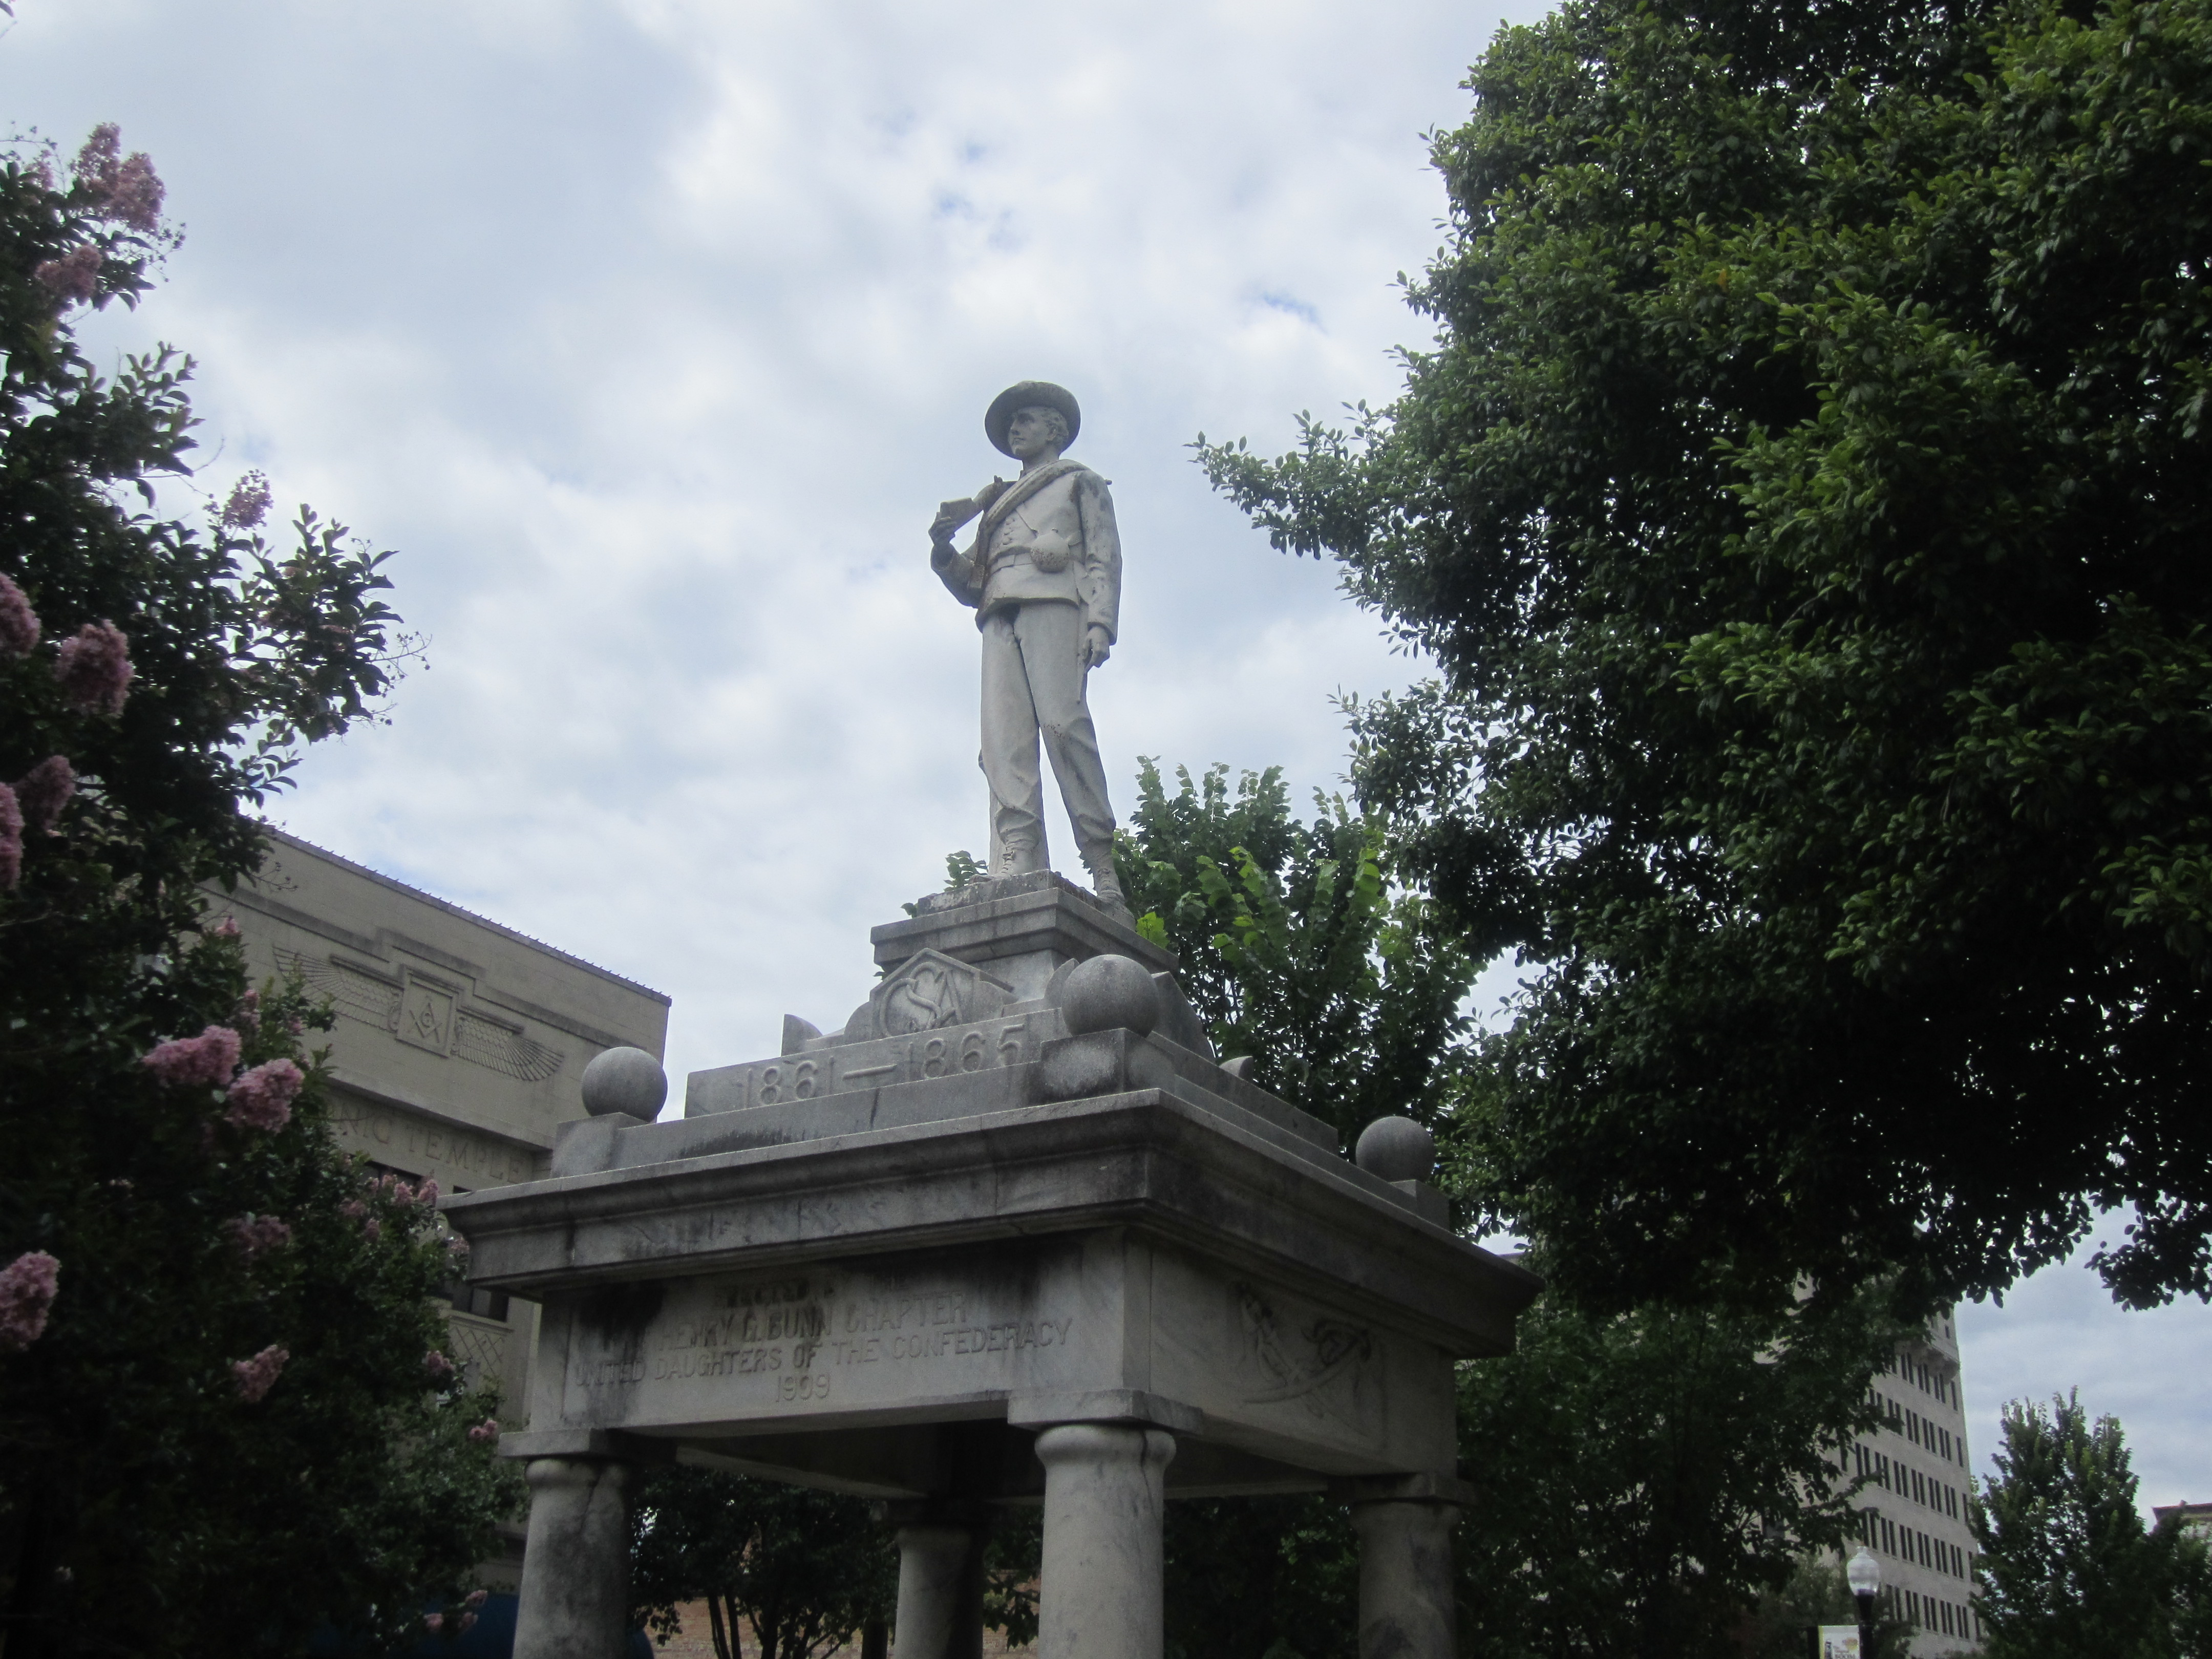 Confederate_soldier_monument,_Union_County,_AR_IMG_2583